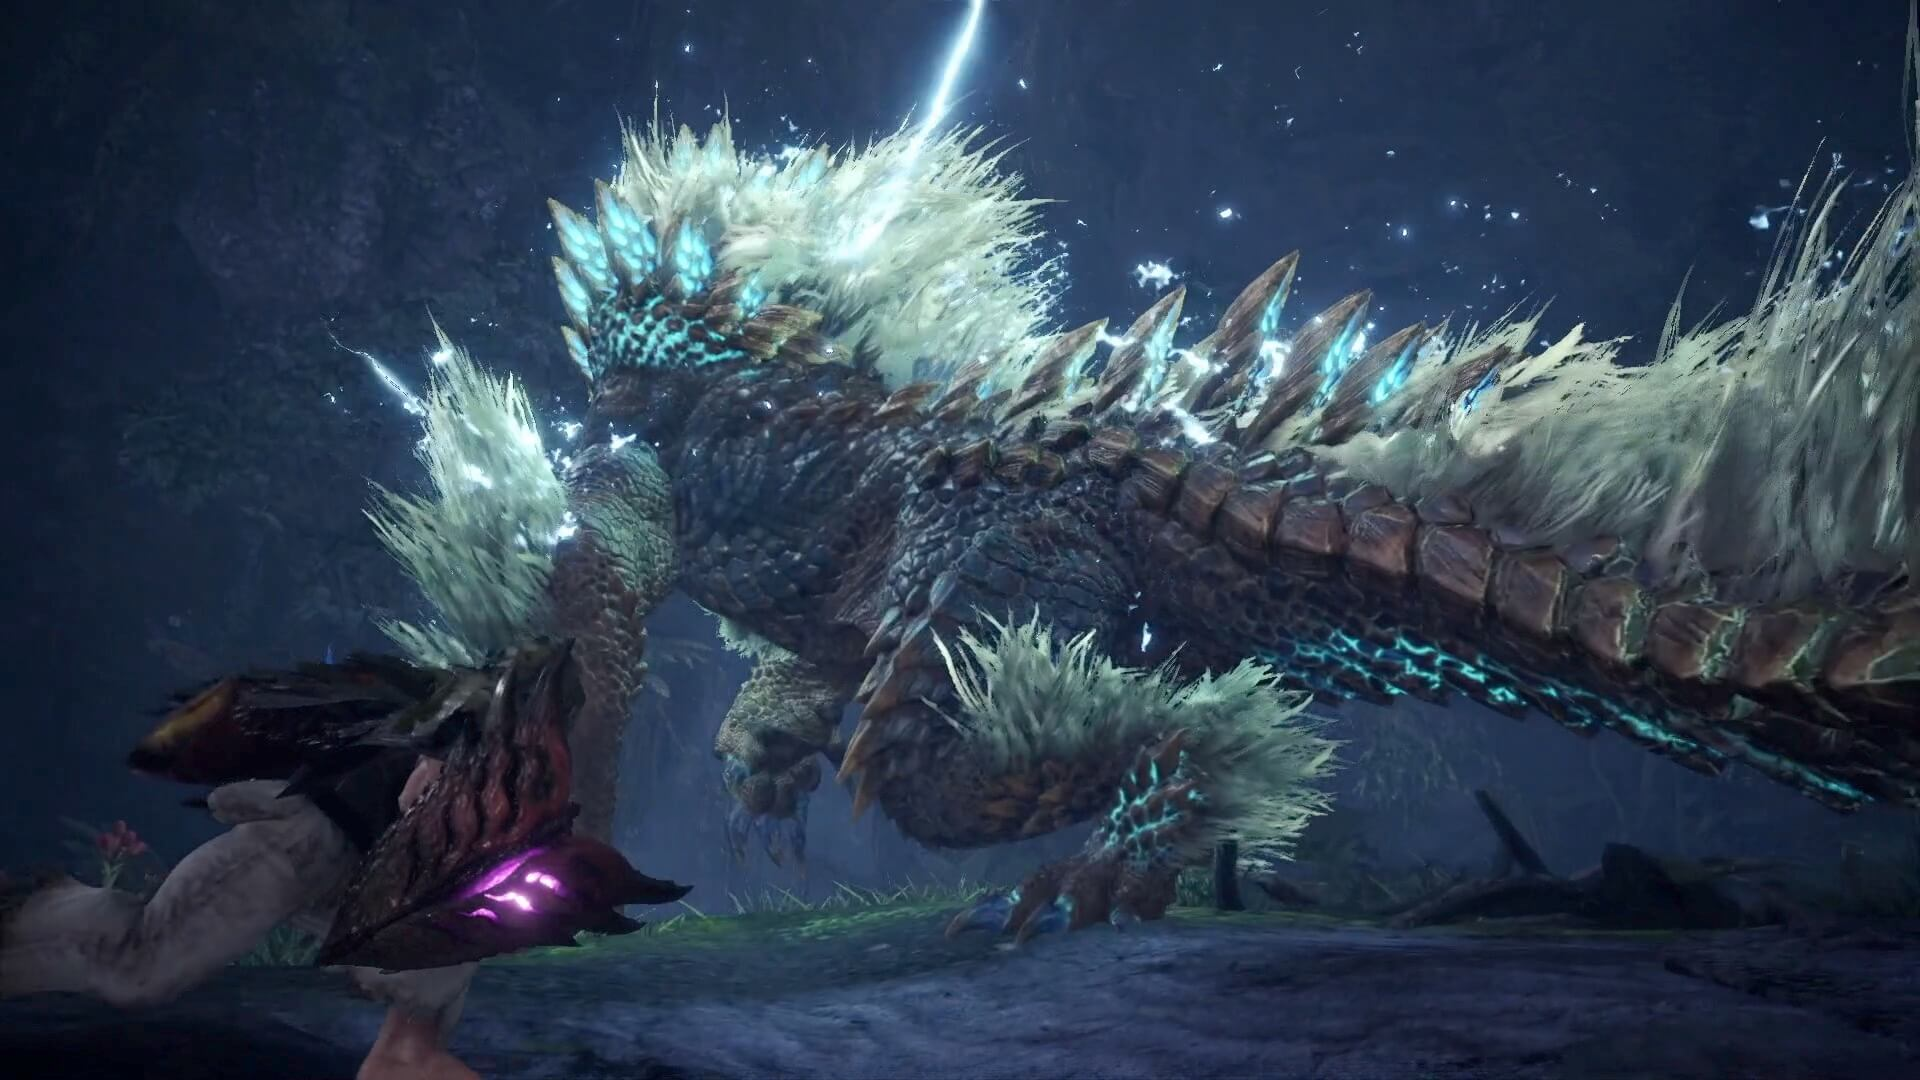 Charged State of Zinogre